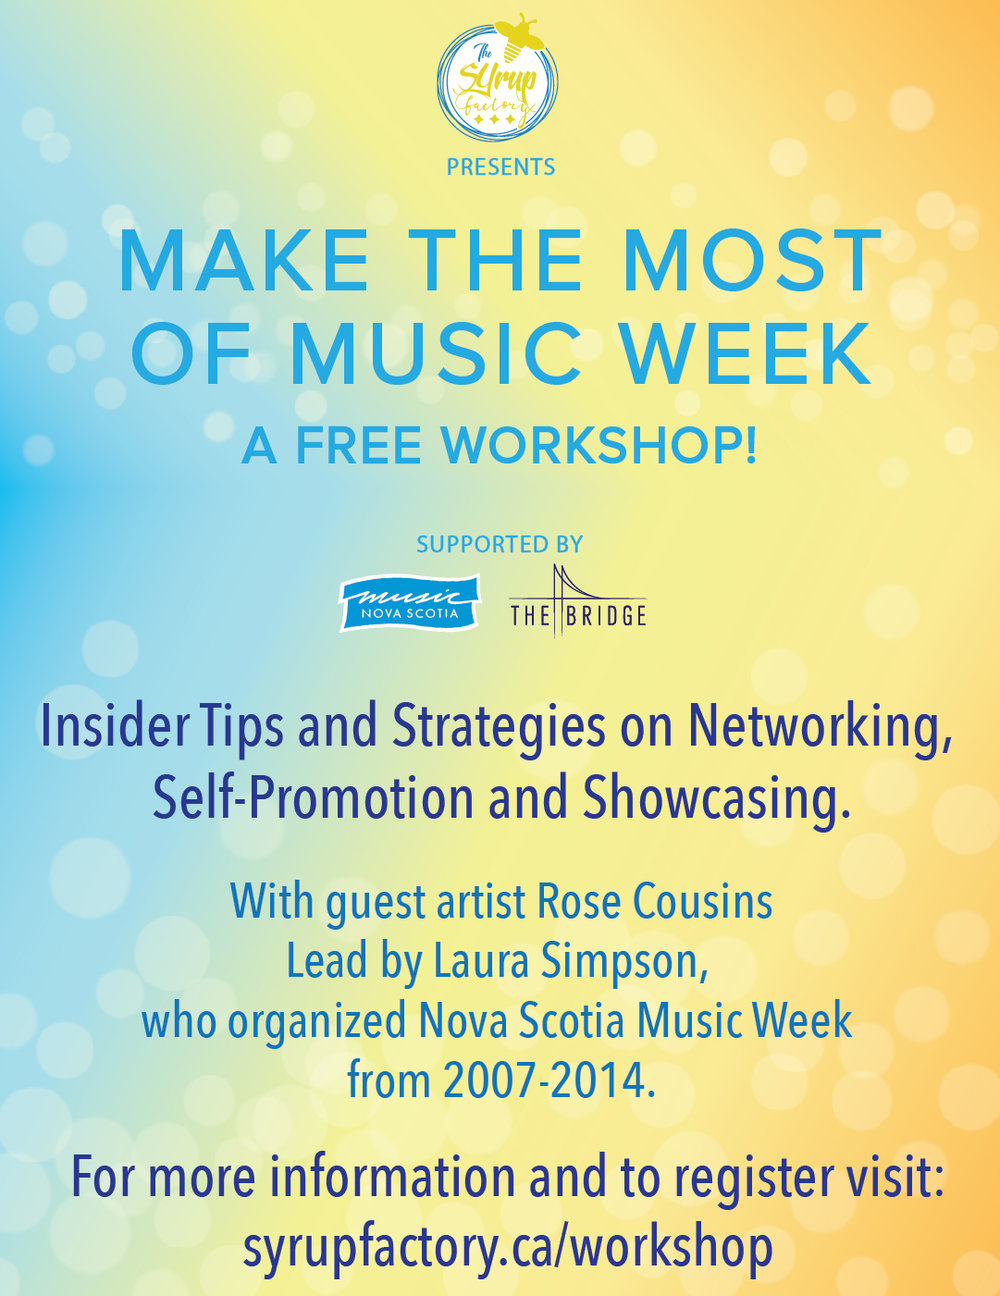 - Our 2017 NSMW workshop supported by Music Nova Scotia and The Bridge focused on tips and strategies to make the best of music week.